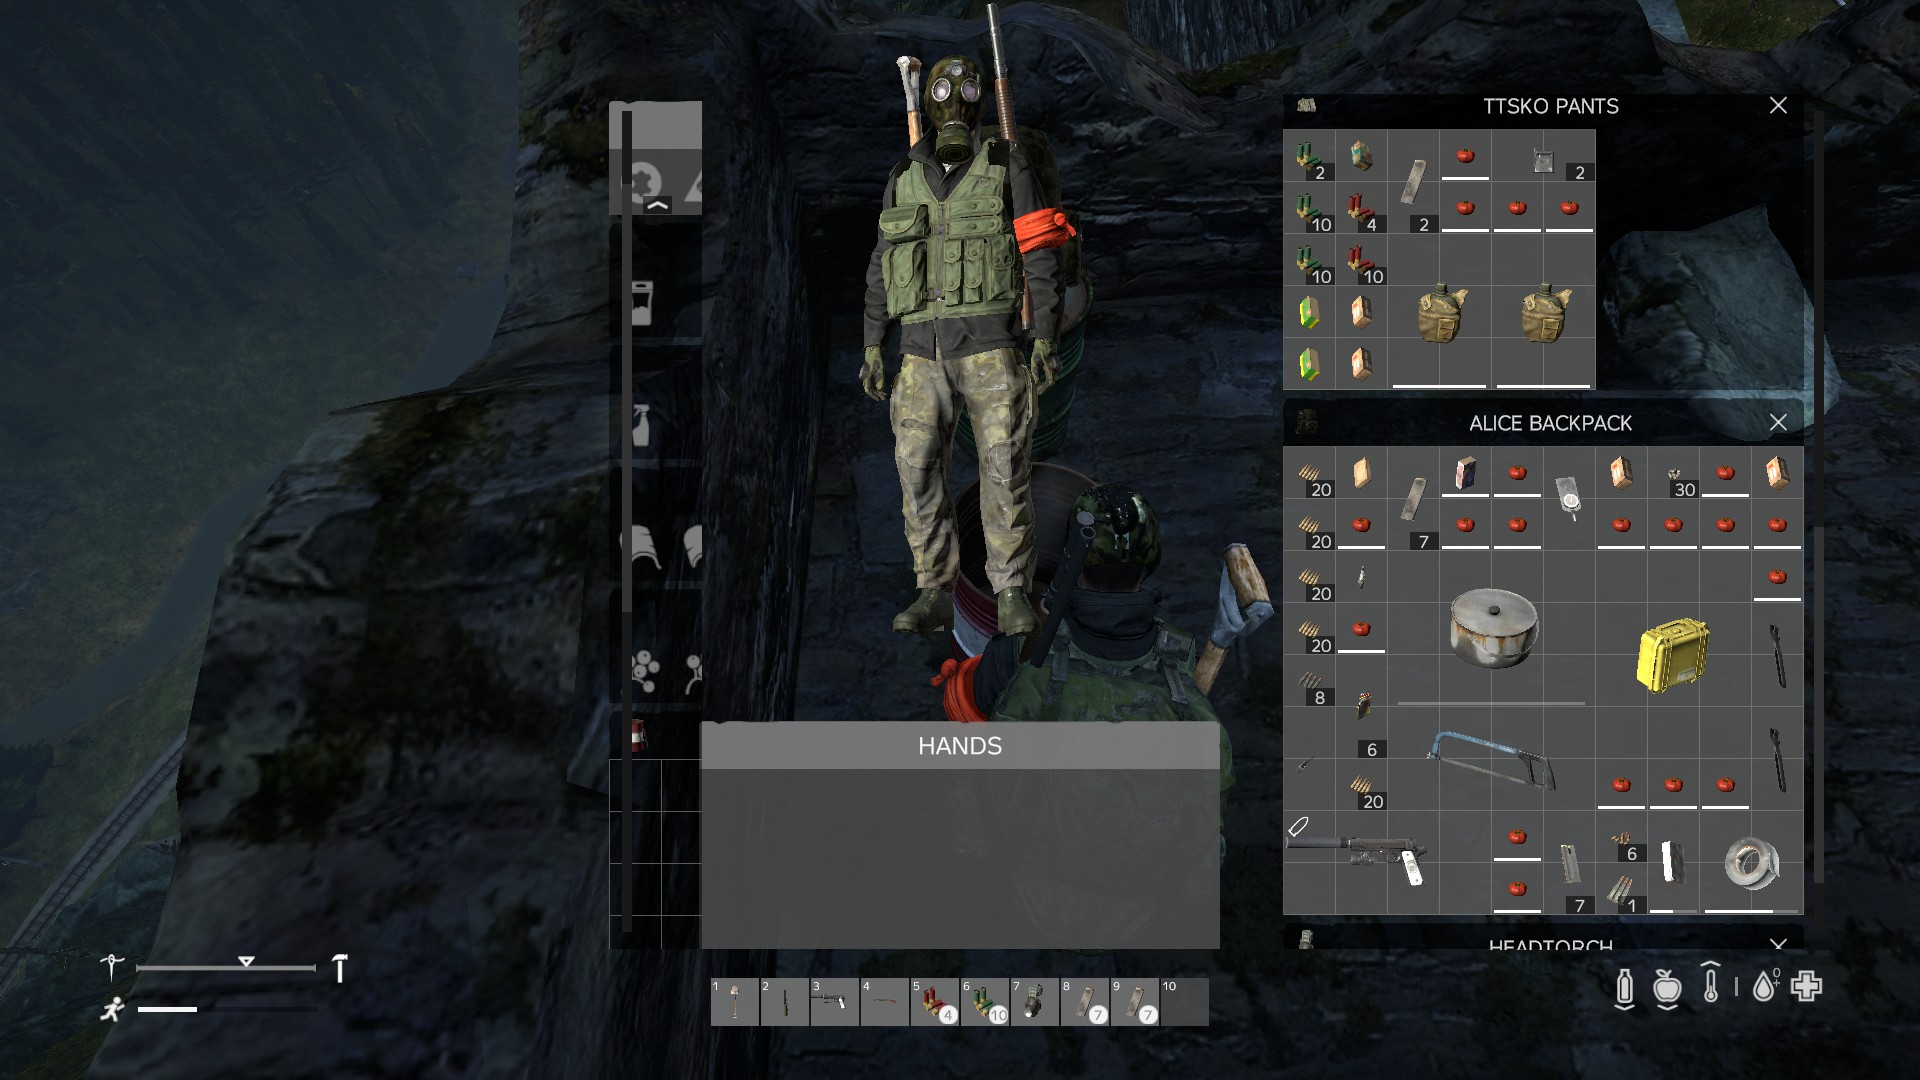 Alice Backpack Dayz ⚓ t137358 barrel inventory bugged when next to another barrel